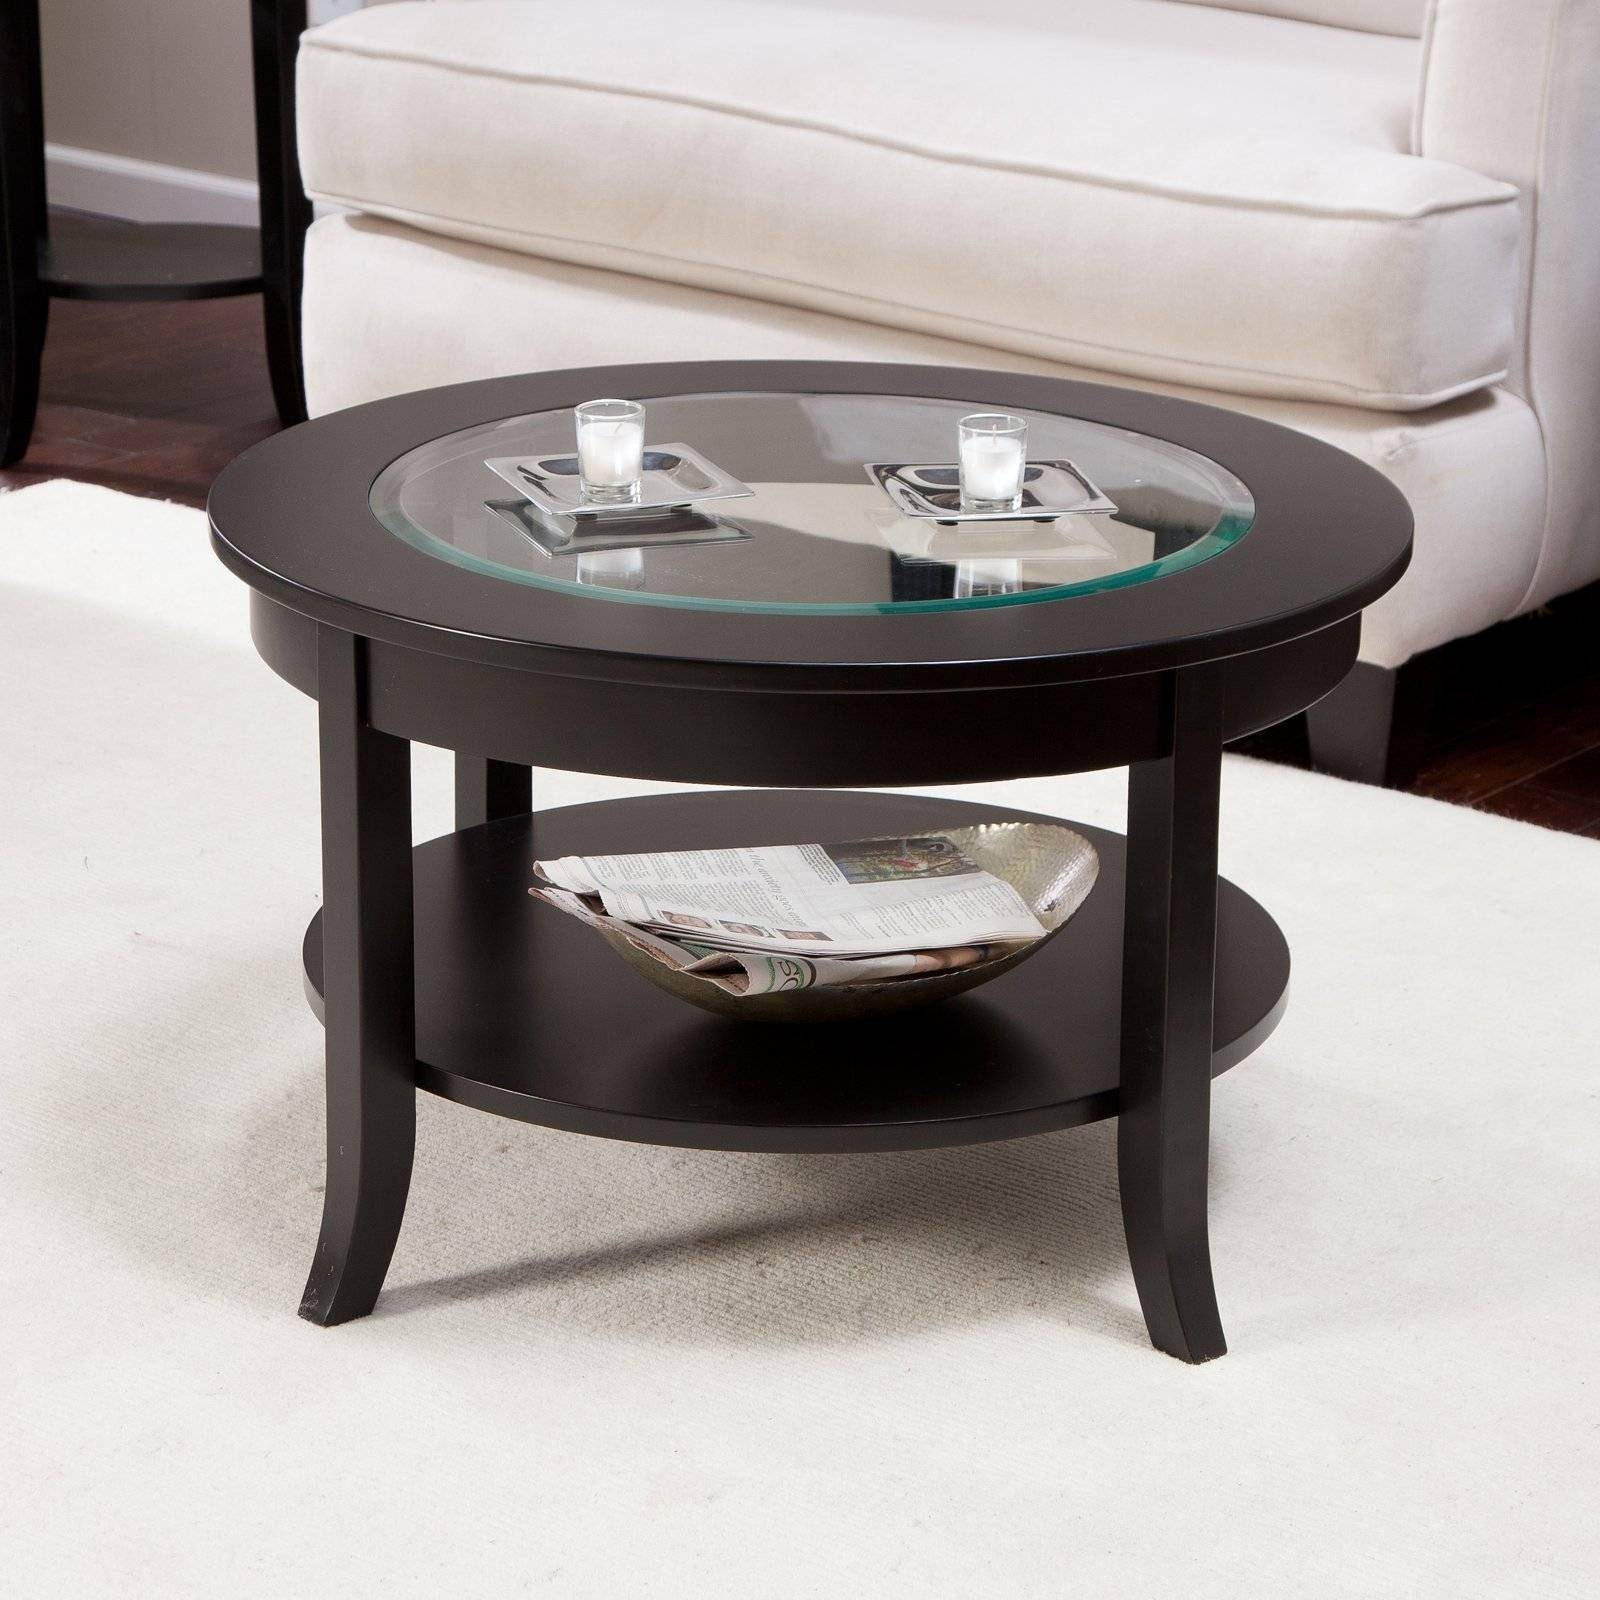 Eaton Coffee Table | Hayneedle inside Solid Round Coffee Tables (Image 15 of 30)